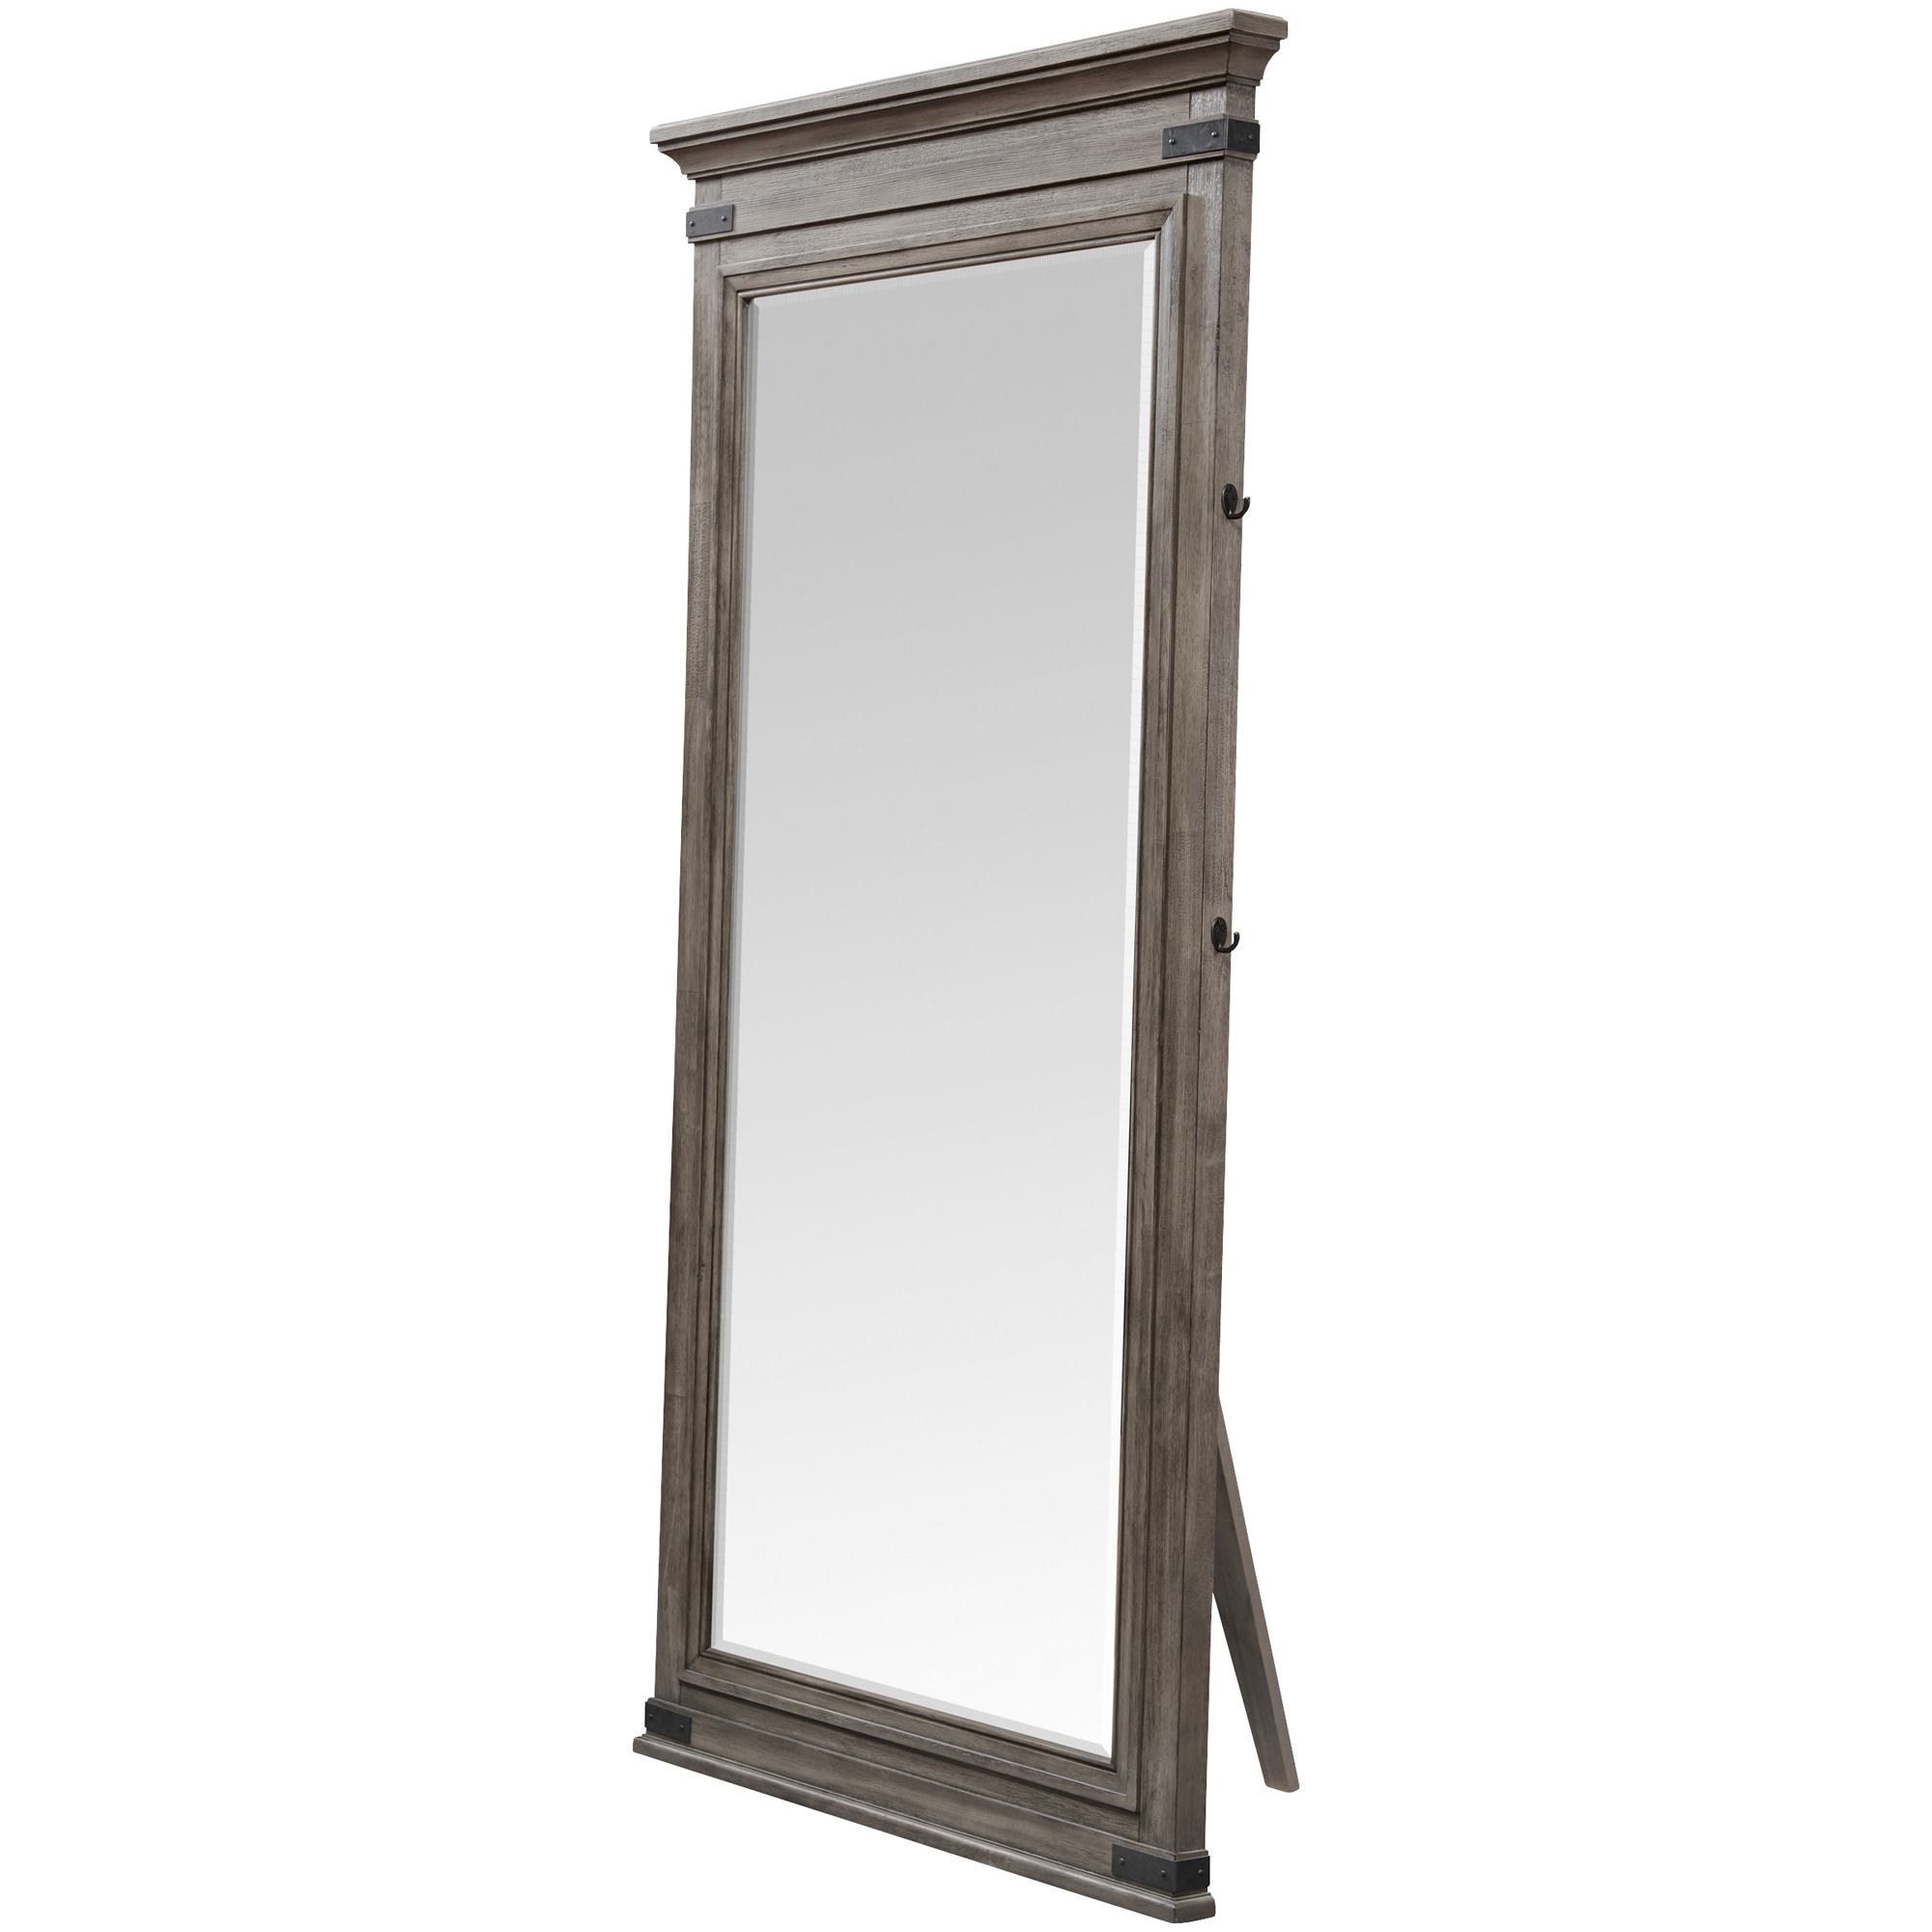 Intercon | Forge Brushed Steel Floor Mirror